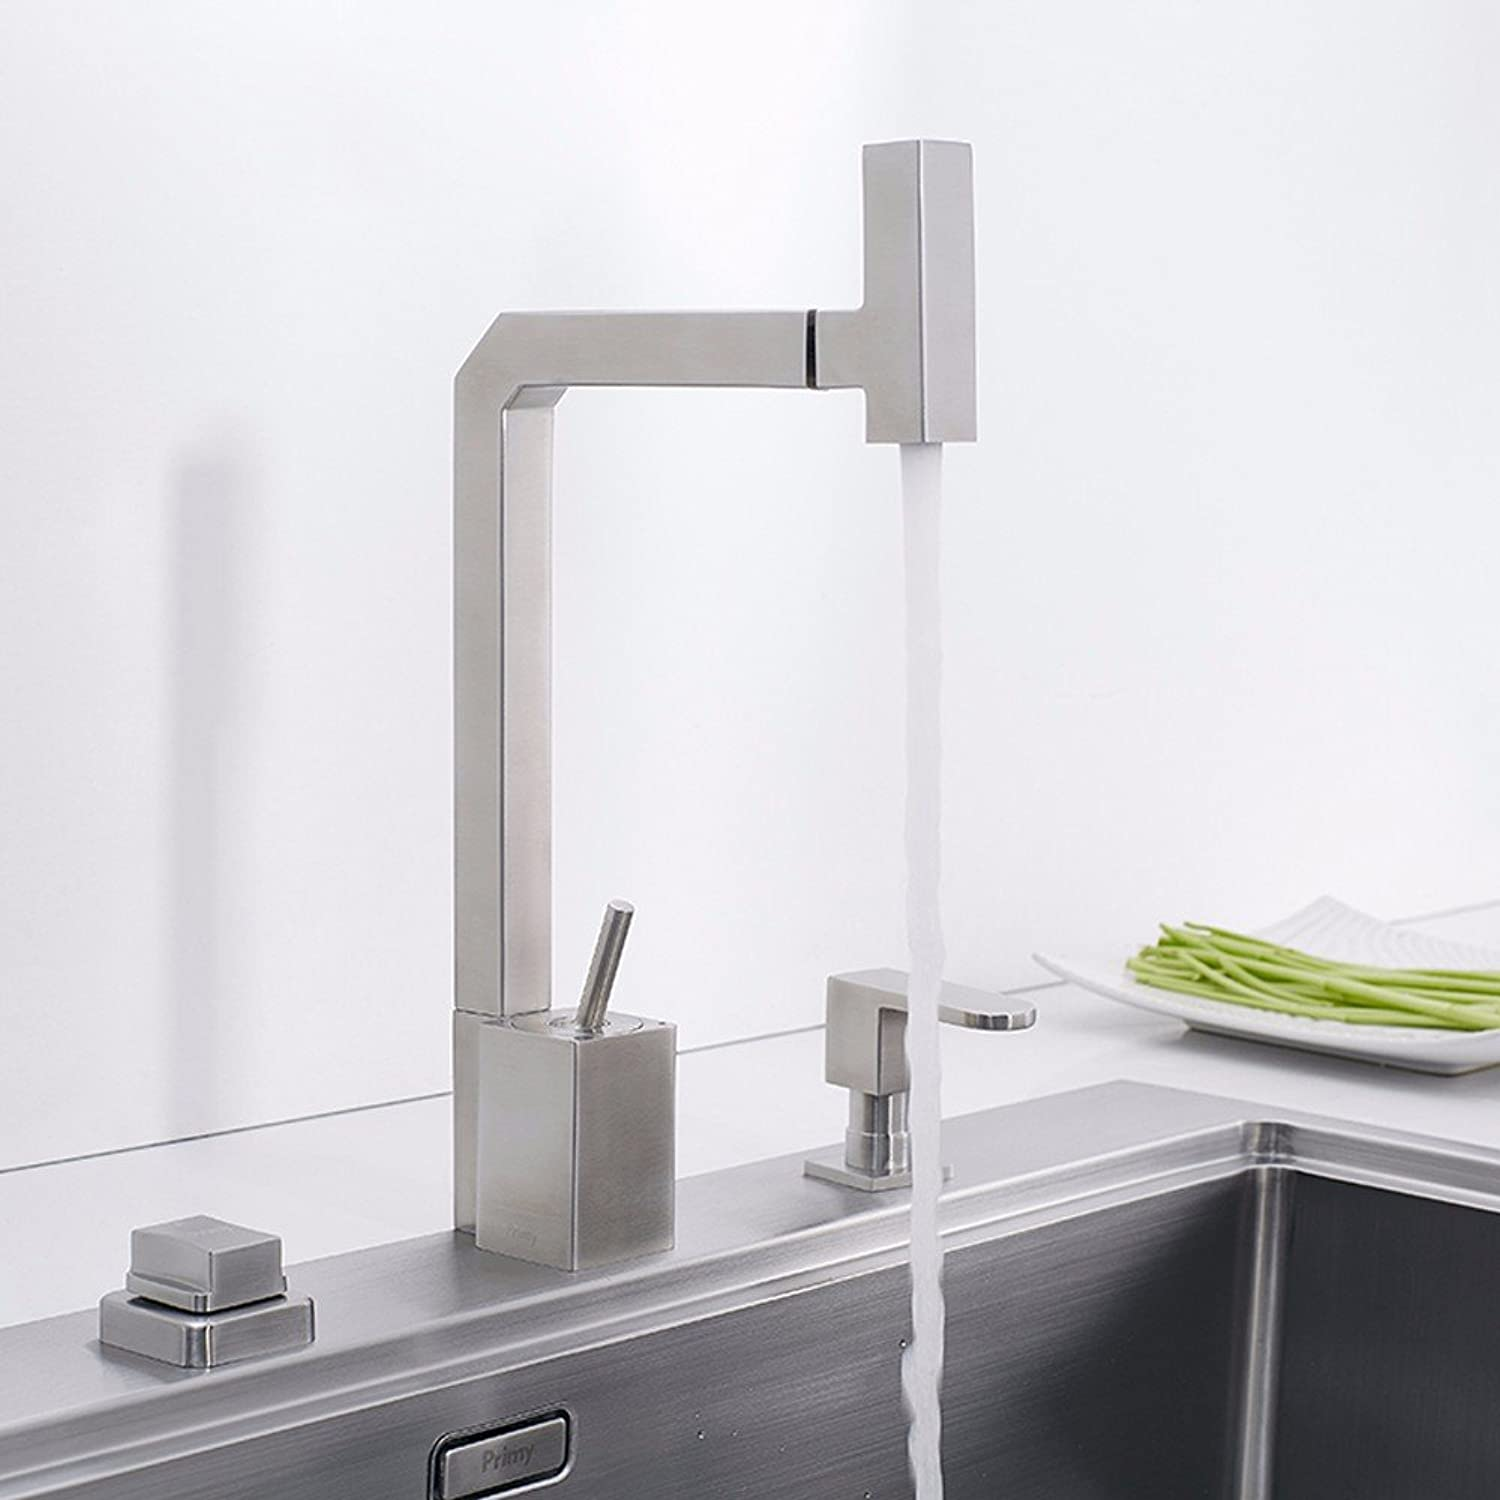 KHSKX-304 Stainless Steel Kitchen Faucet Hot And Cold Dish Sink Faucet Can redate Sink Faucet